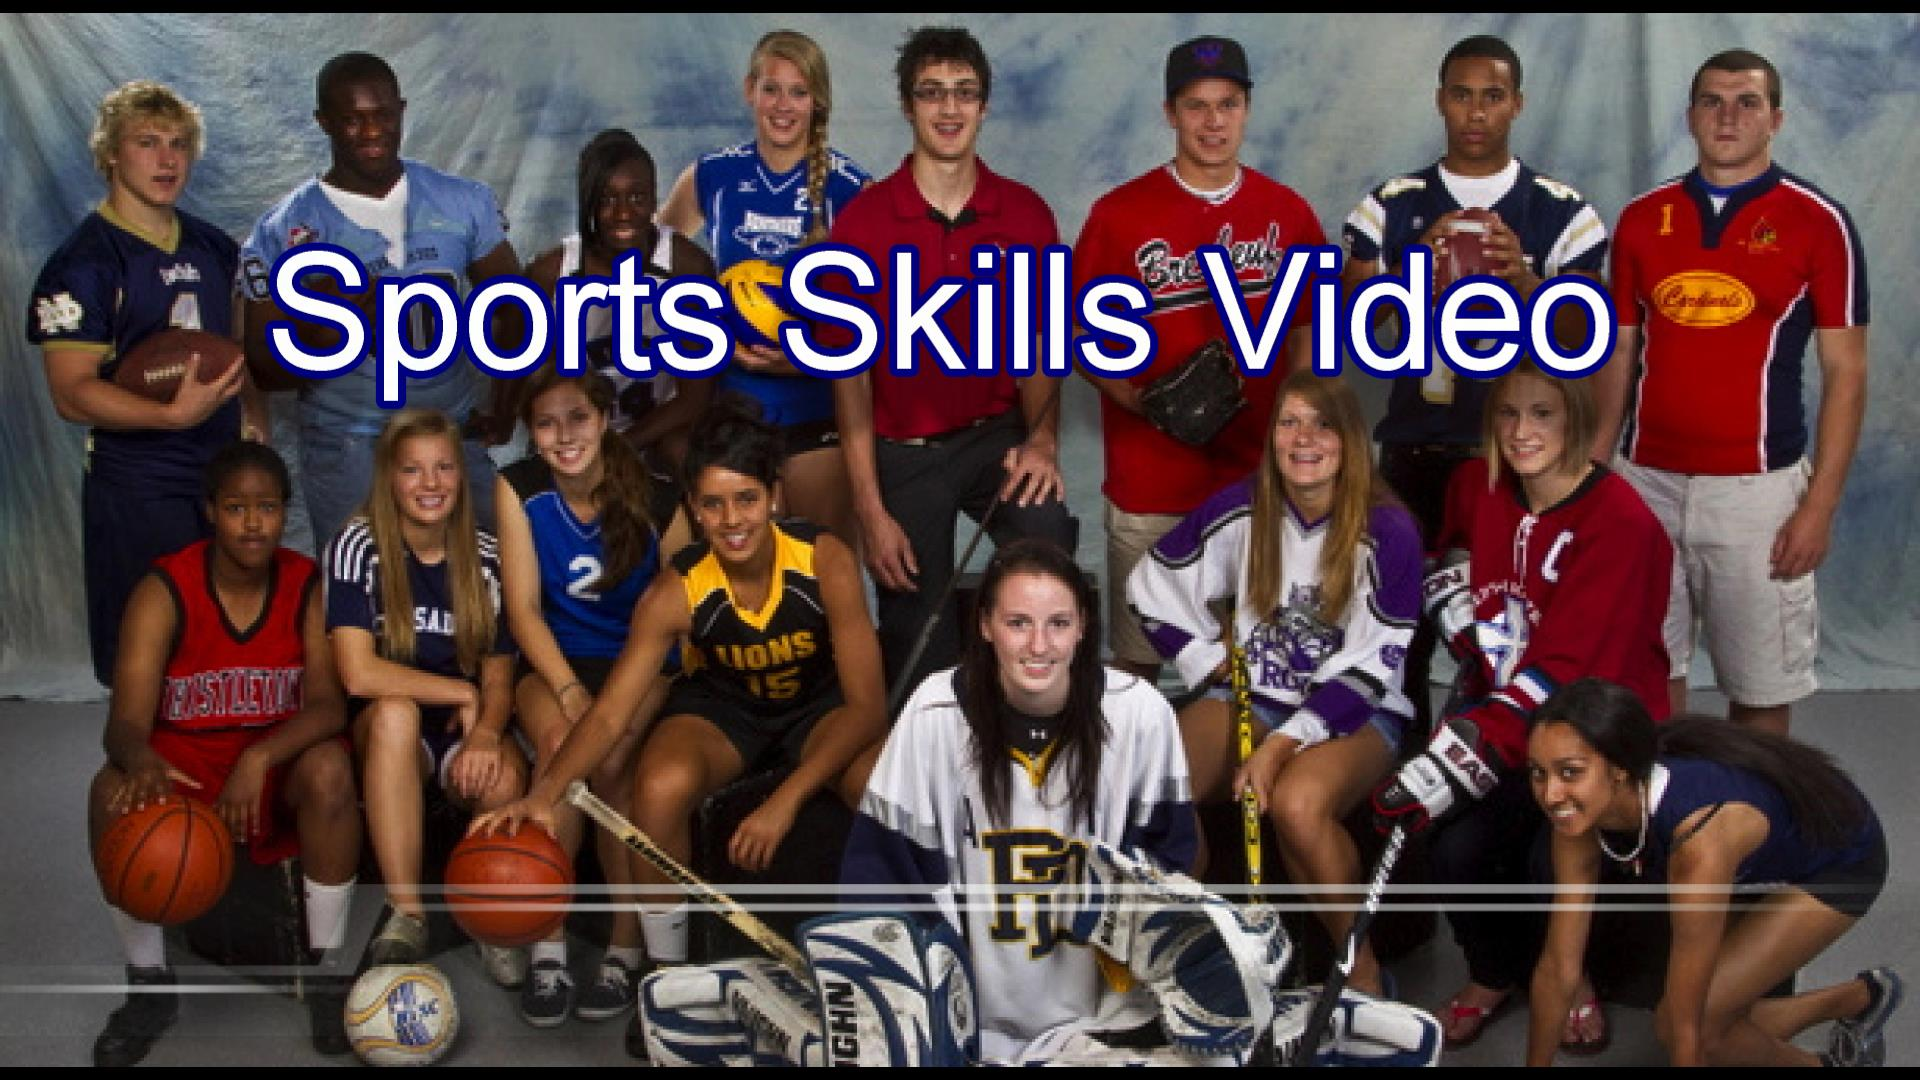 GET RECRUITED! SIGN UP FOR YOUR SPORTS SKILLS VIDEO TODAY!